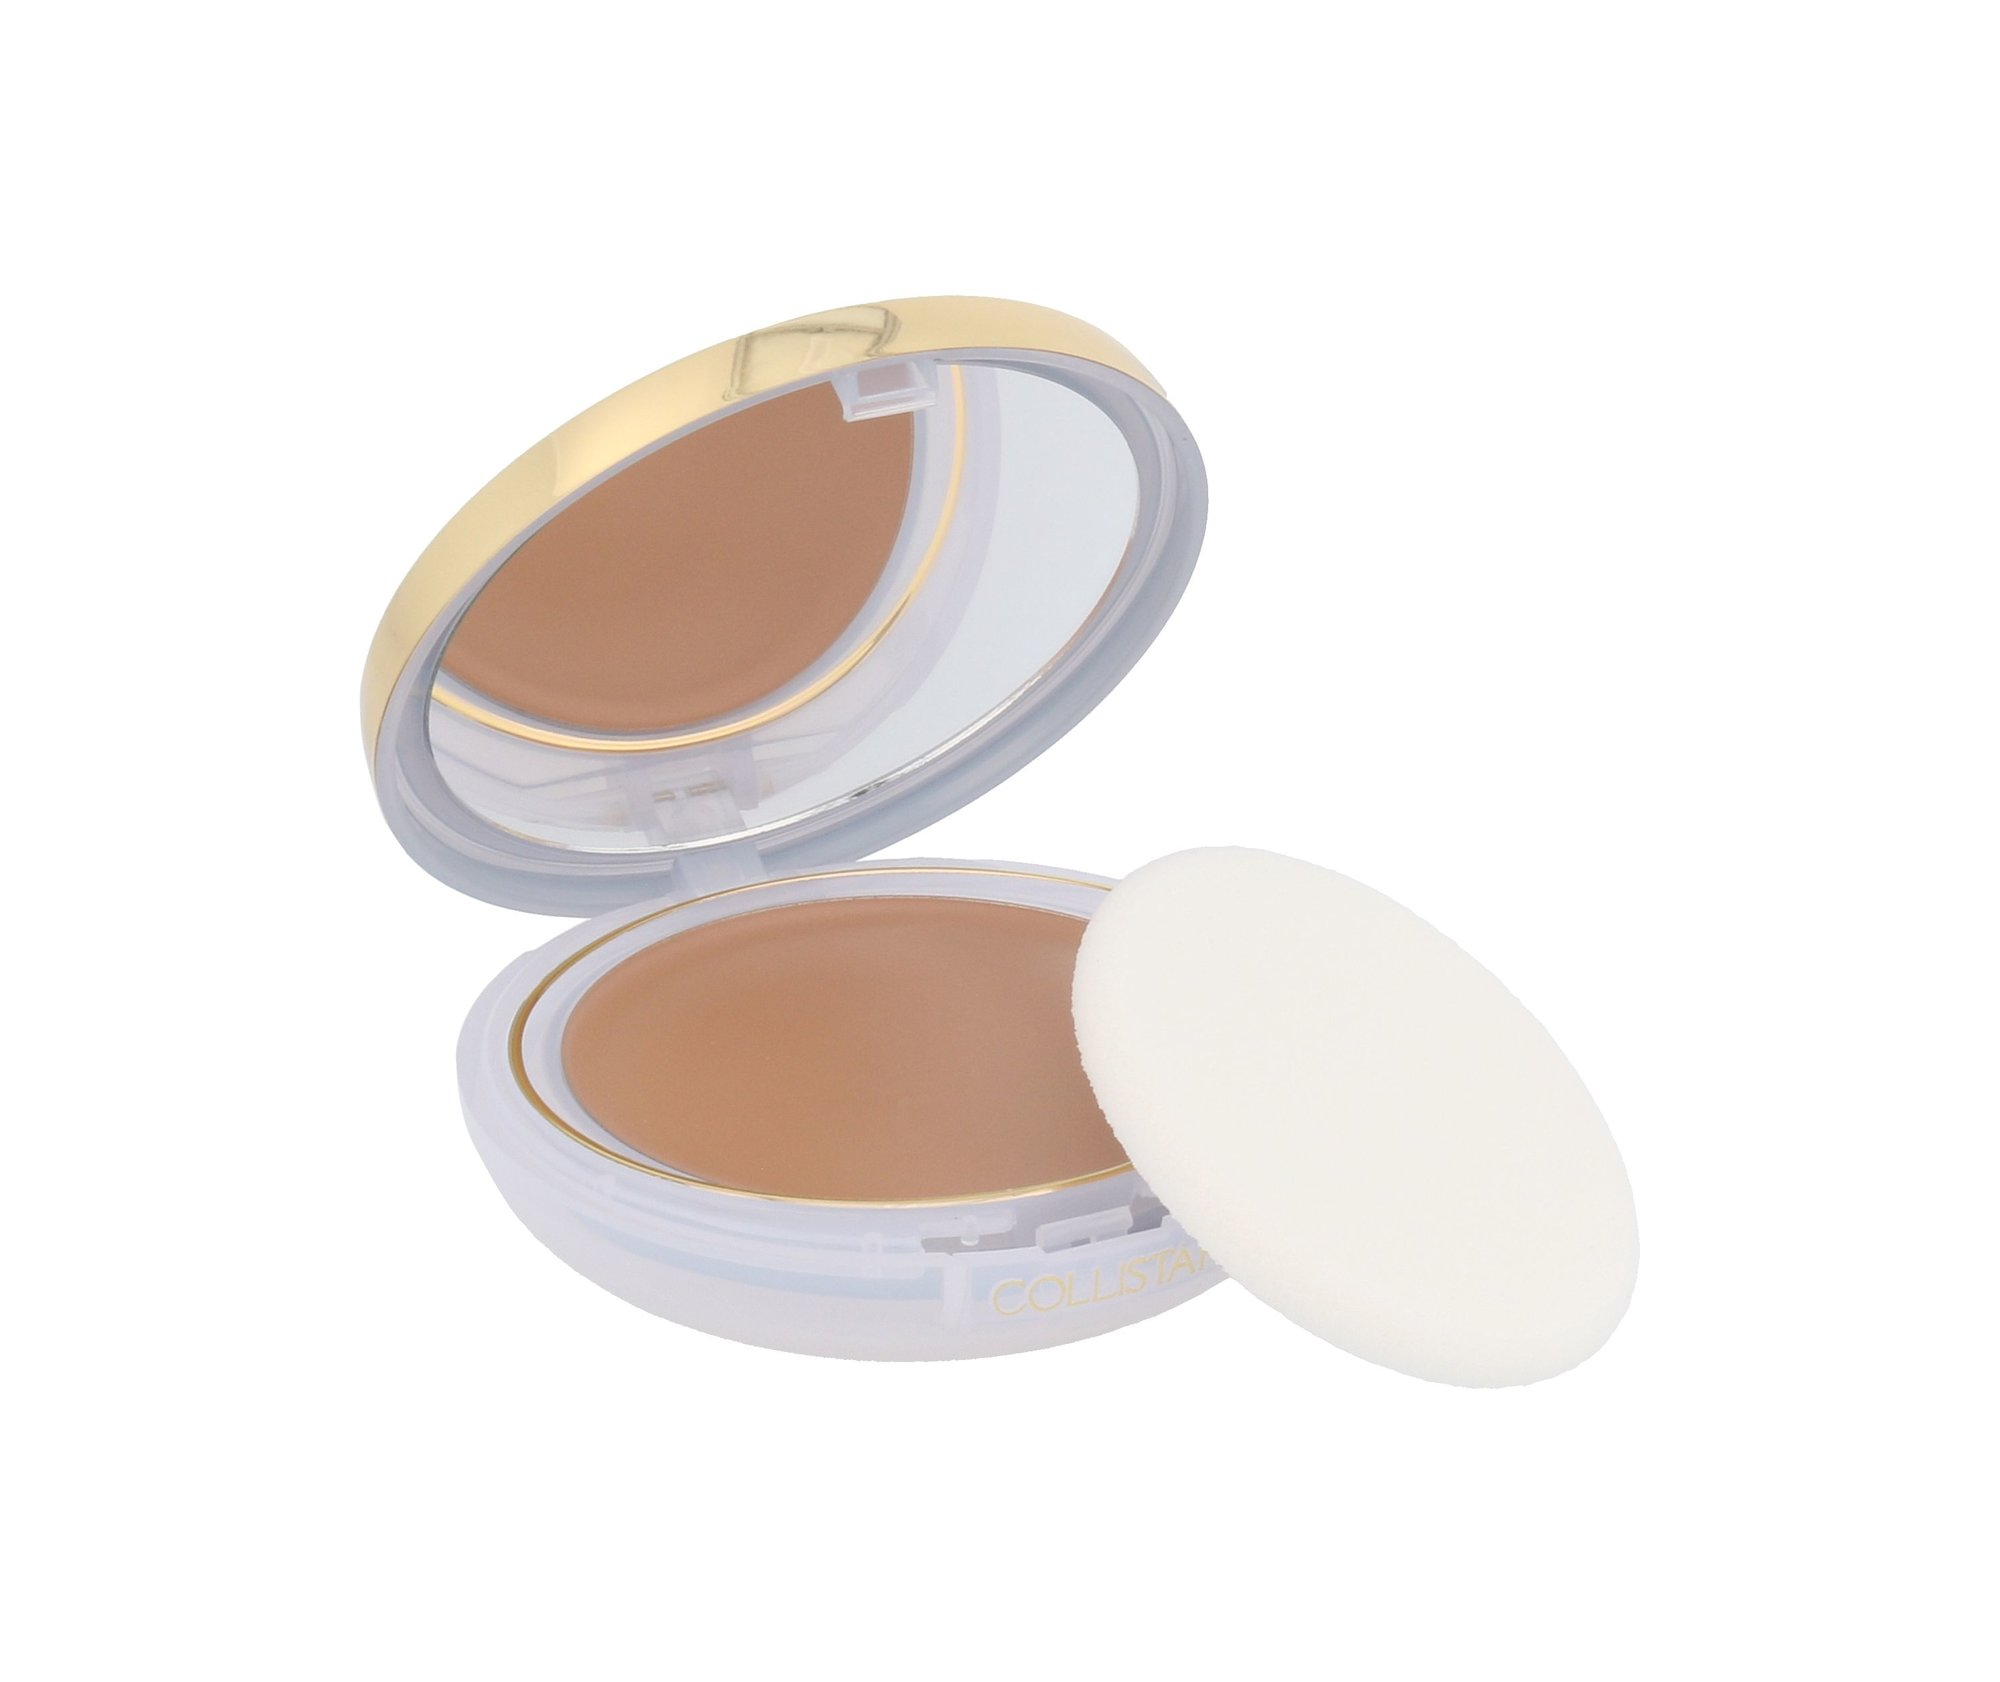 Kompaktinė pudra Collistar Cream-Powder Compact Foundation